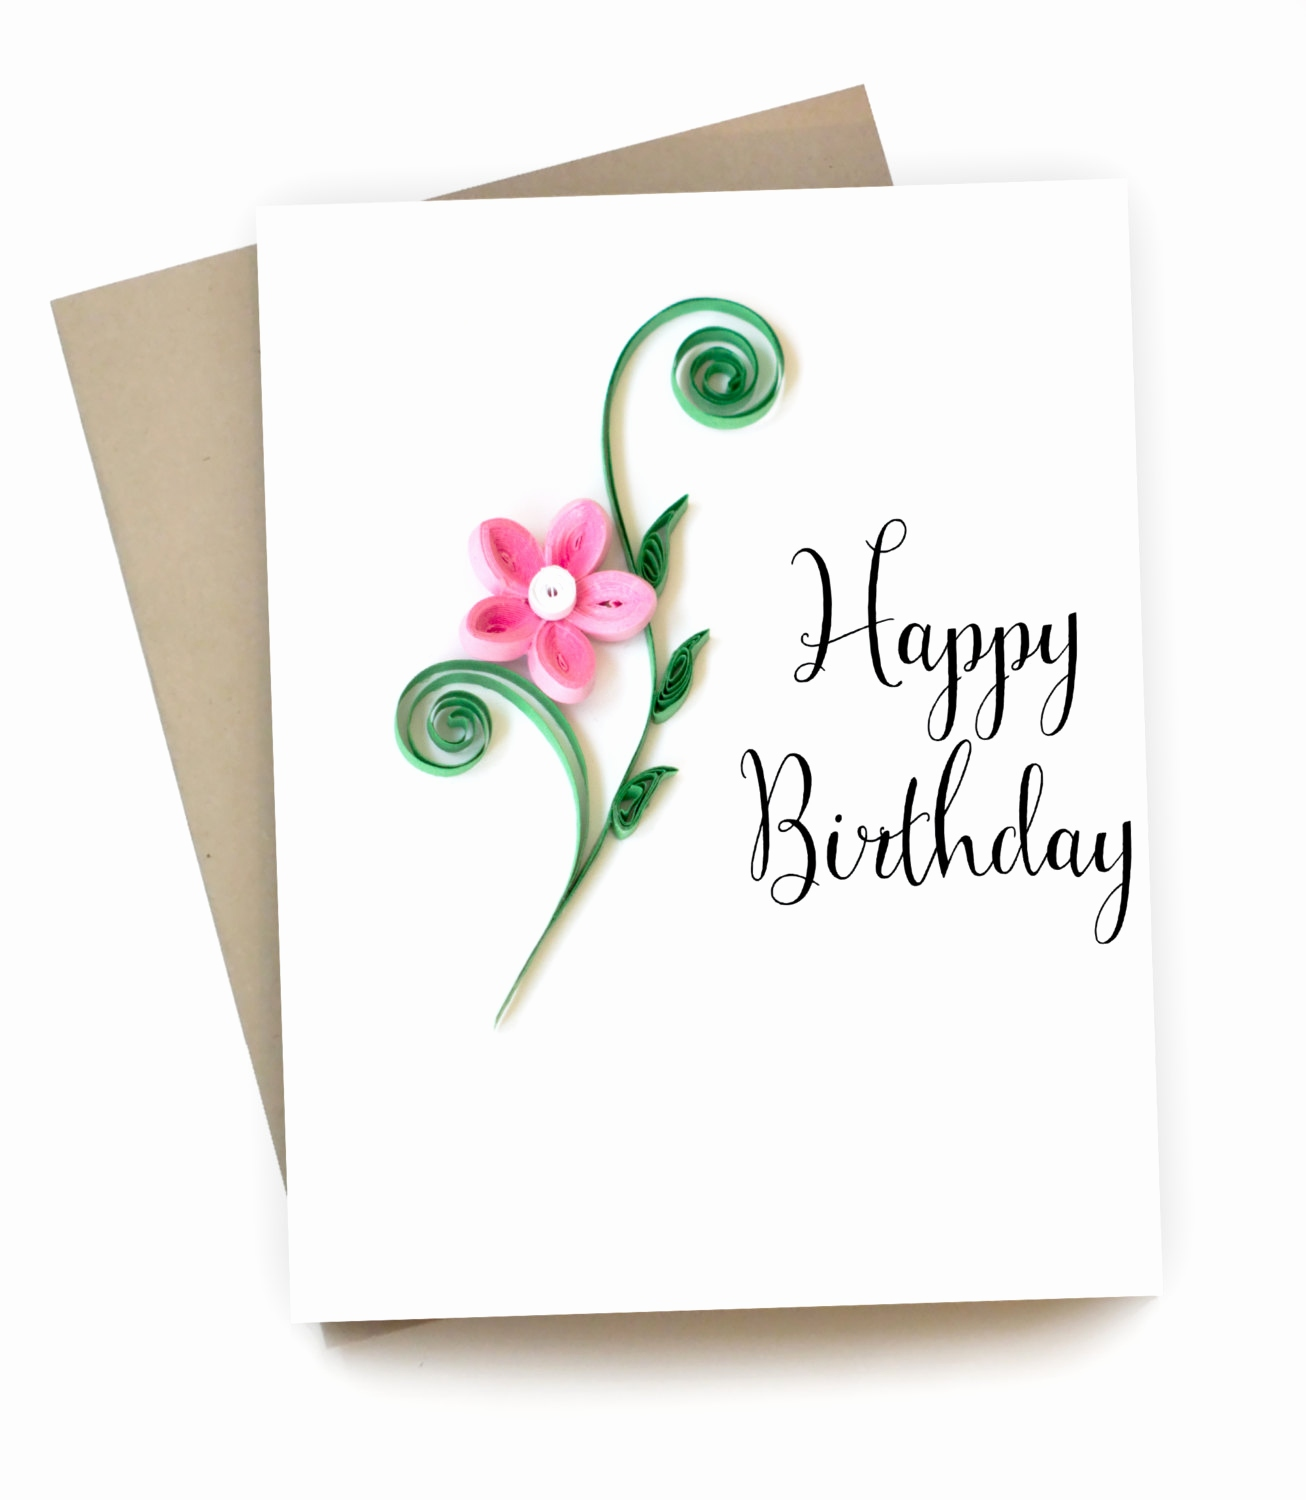 birthday card ideas for daughter ; homemade-birthday-card-ideas-for-mom-from-daughter-beautiful-happy-birthday-cards-for-mom-of-homemade-birthday-card-ideas-for-mom-from-daughter